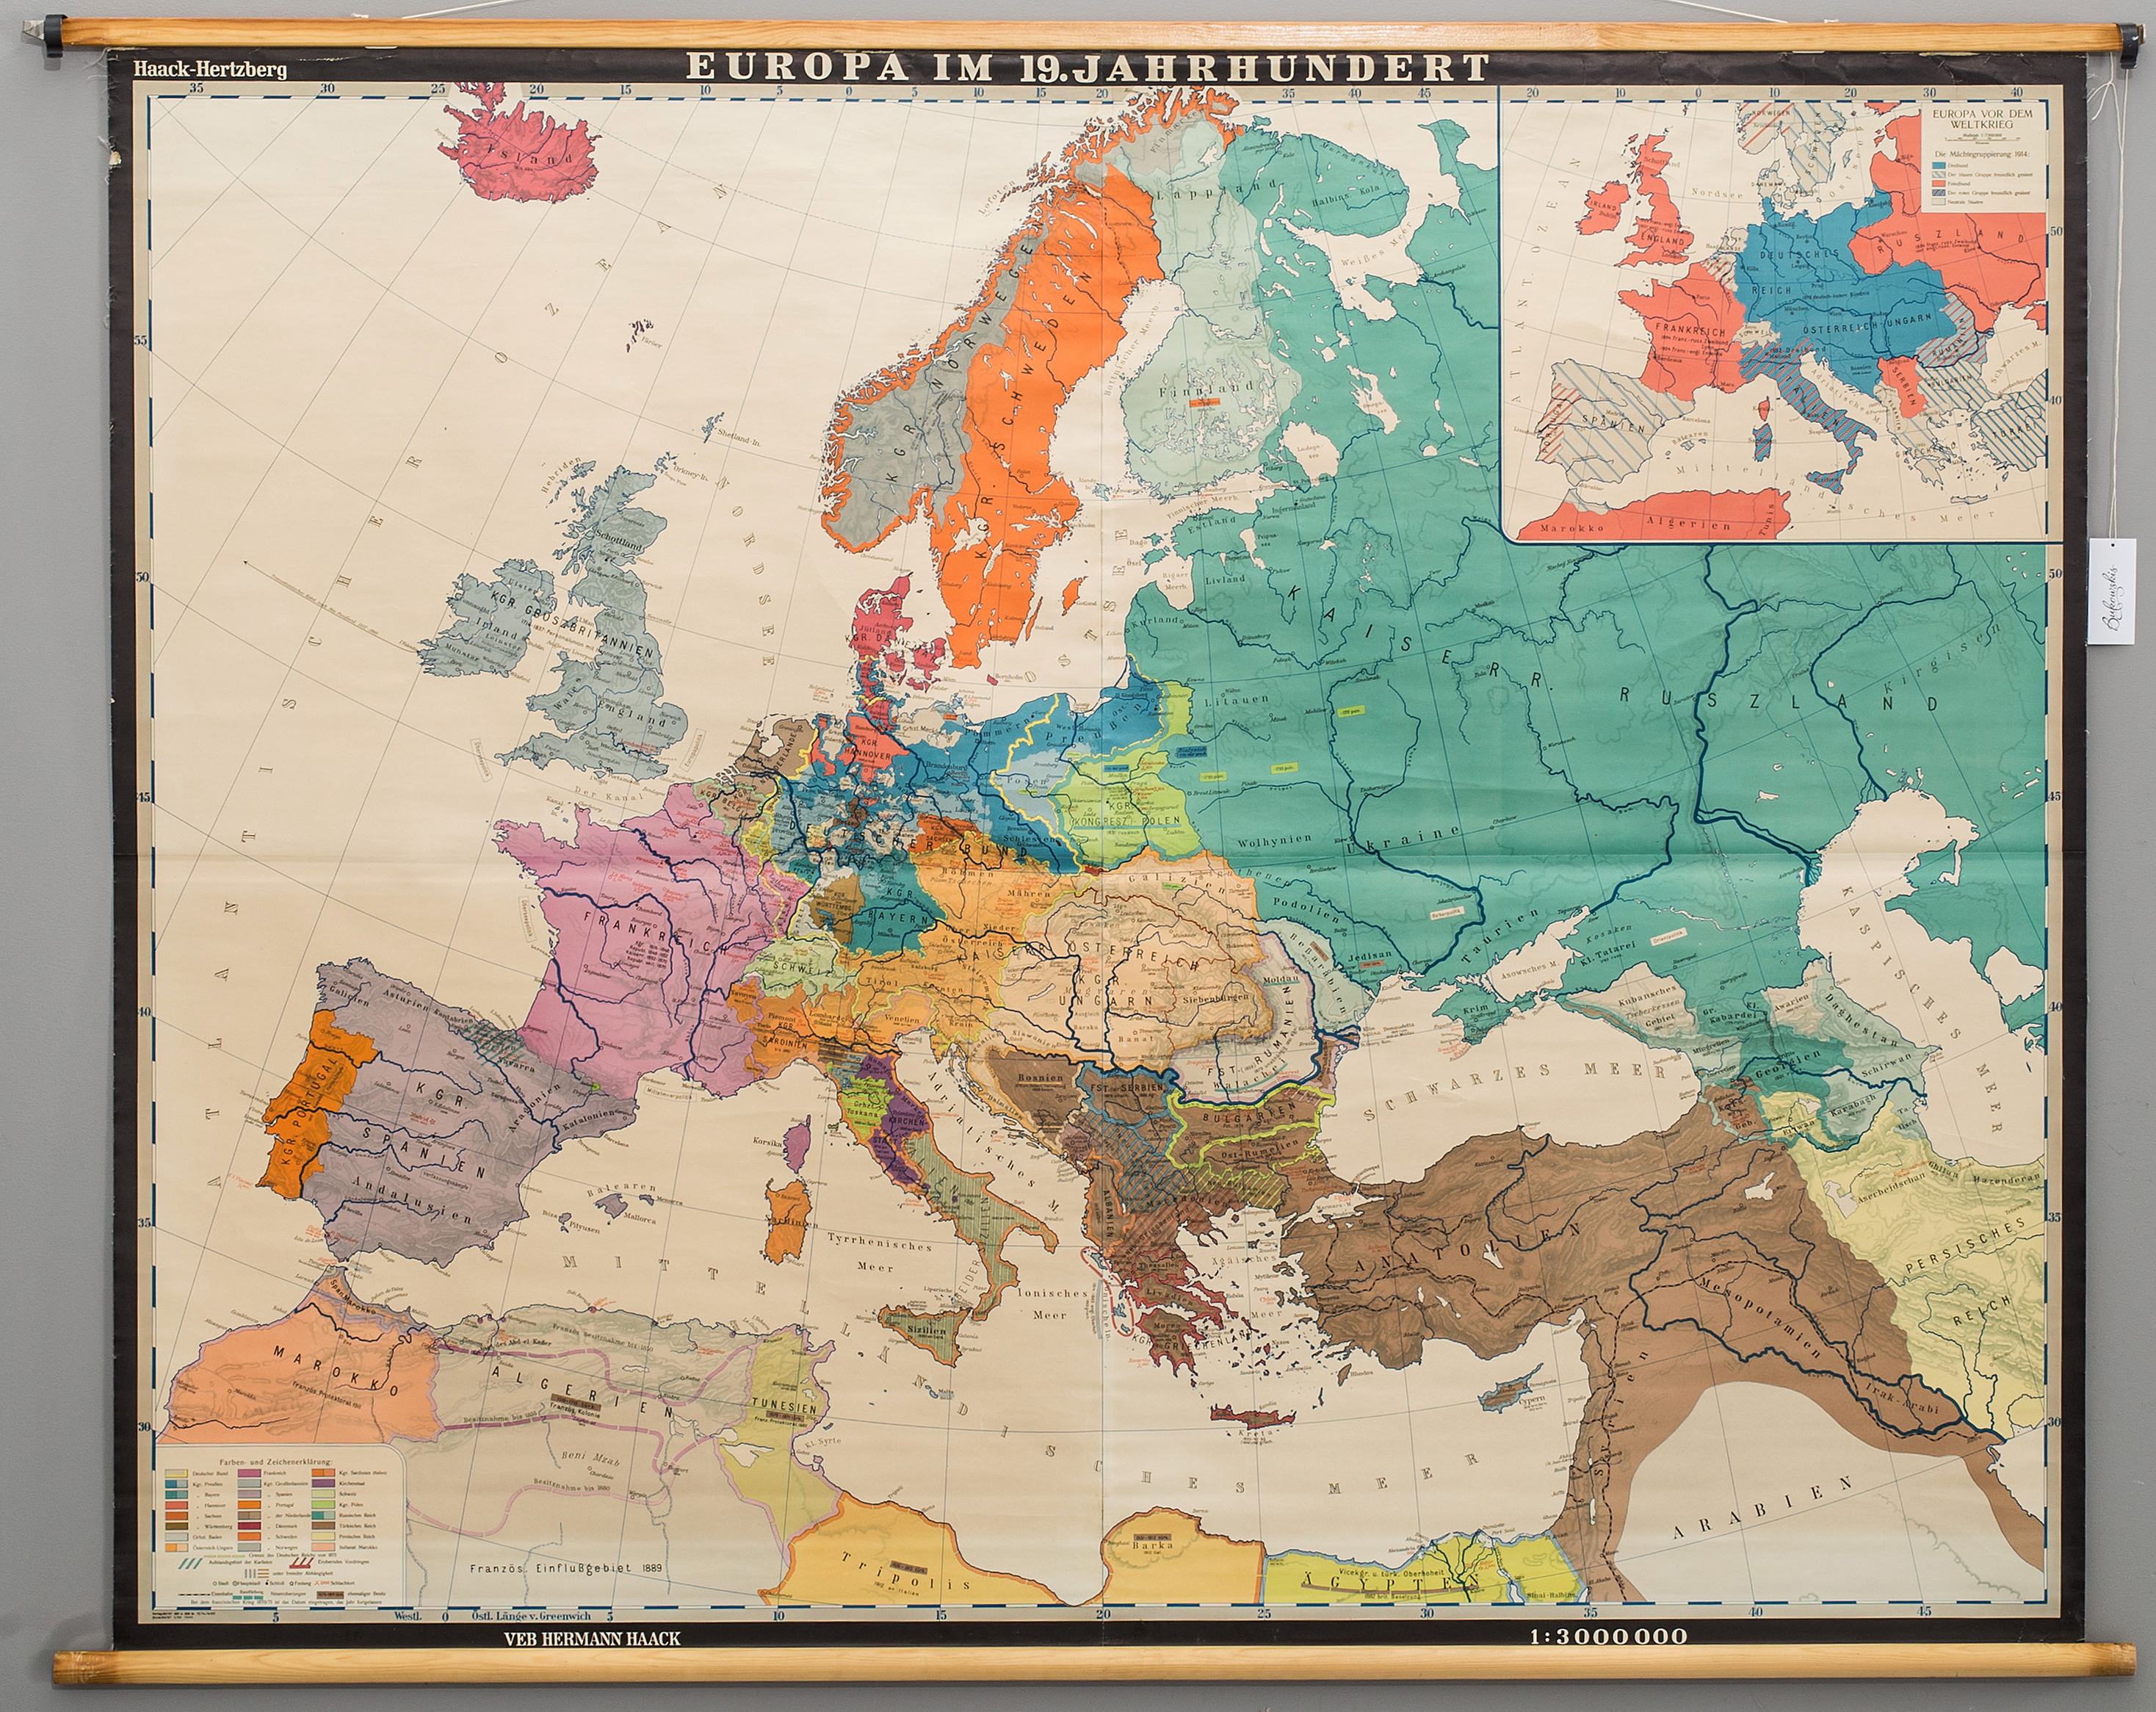 A school map europe 19th centurynorstedts skolavdeling stockholm a school map europe 19th centurynorstedts skolavdeling stockholm mid 20th century bukowskis publicscrutiny Image collections